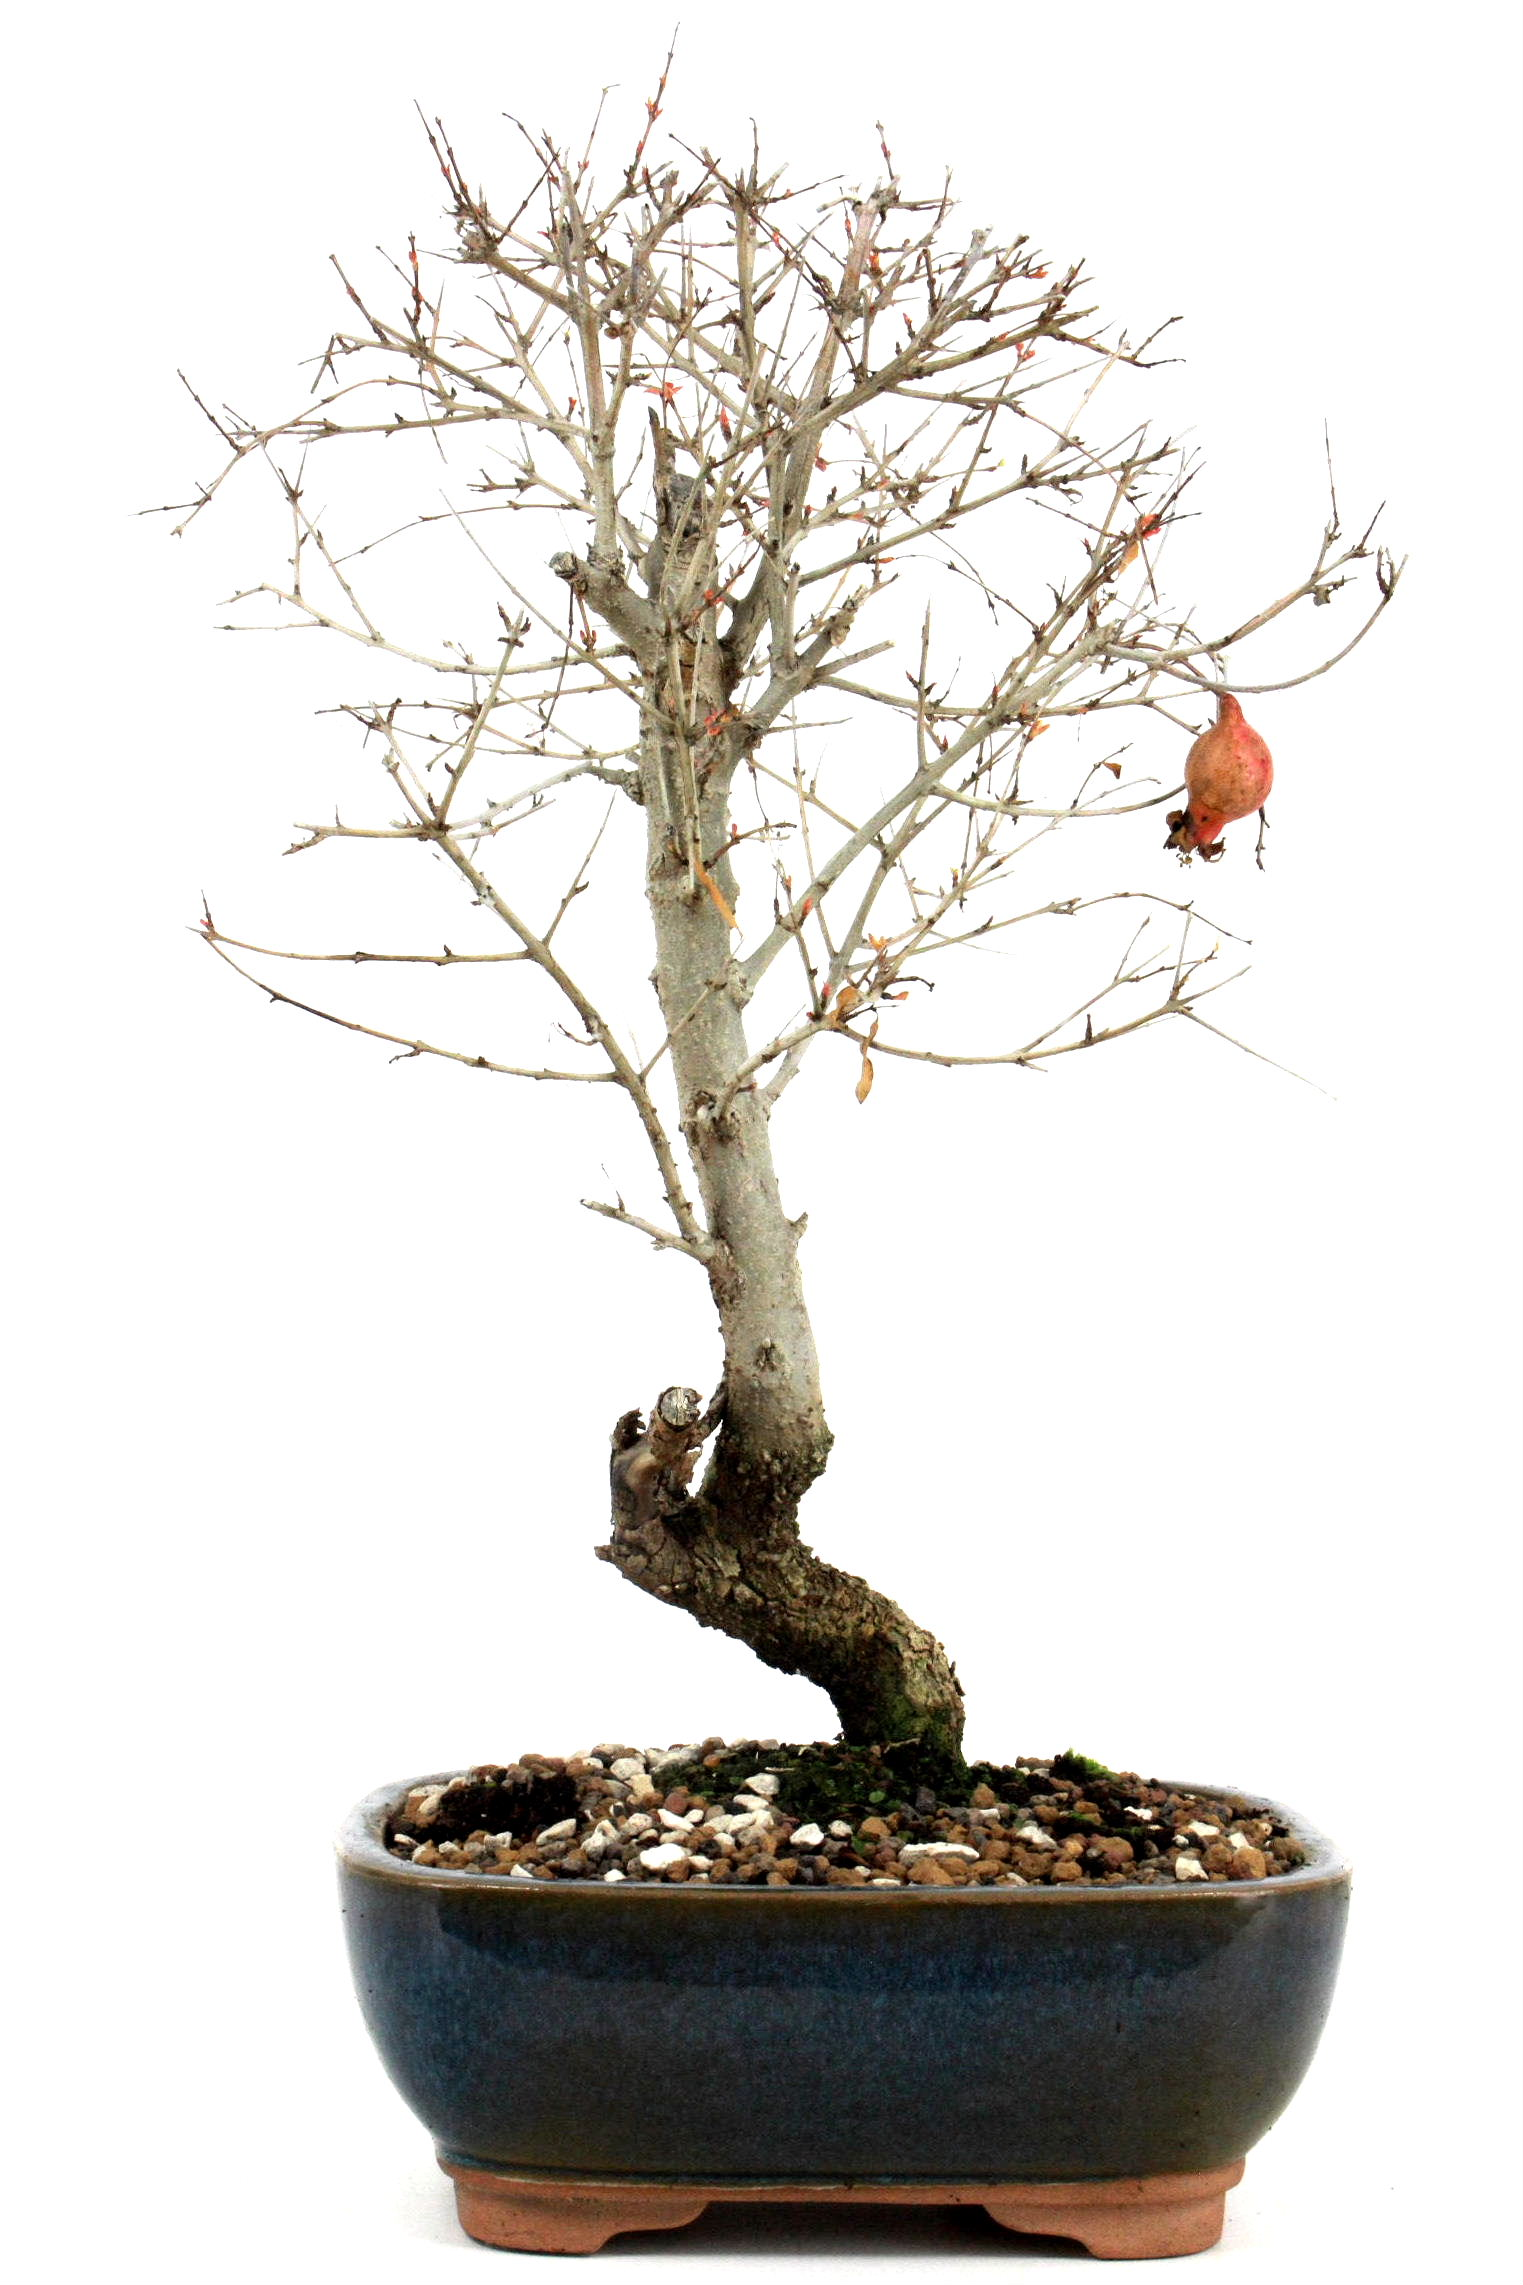 Bonsai granatapfel 35 40 cm 1925 bei oyaki bonsai kaufen for Bonsai onlineshop